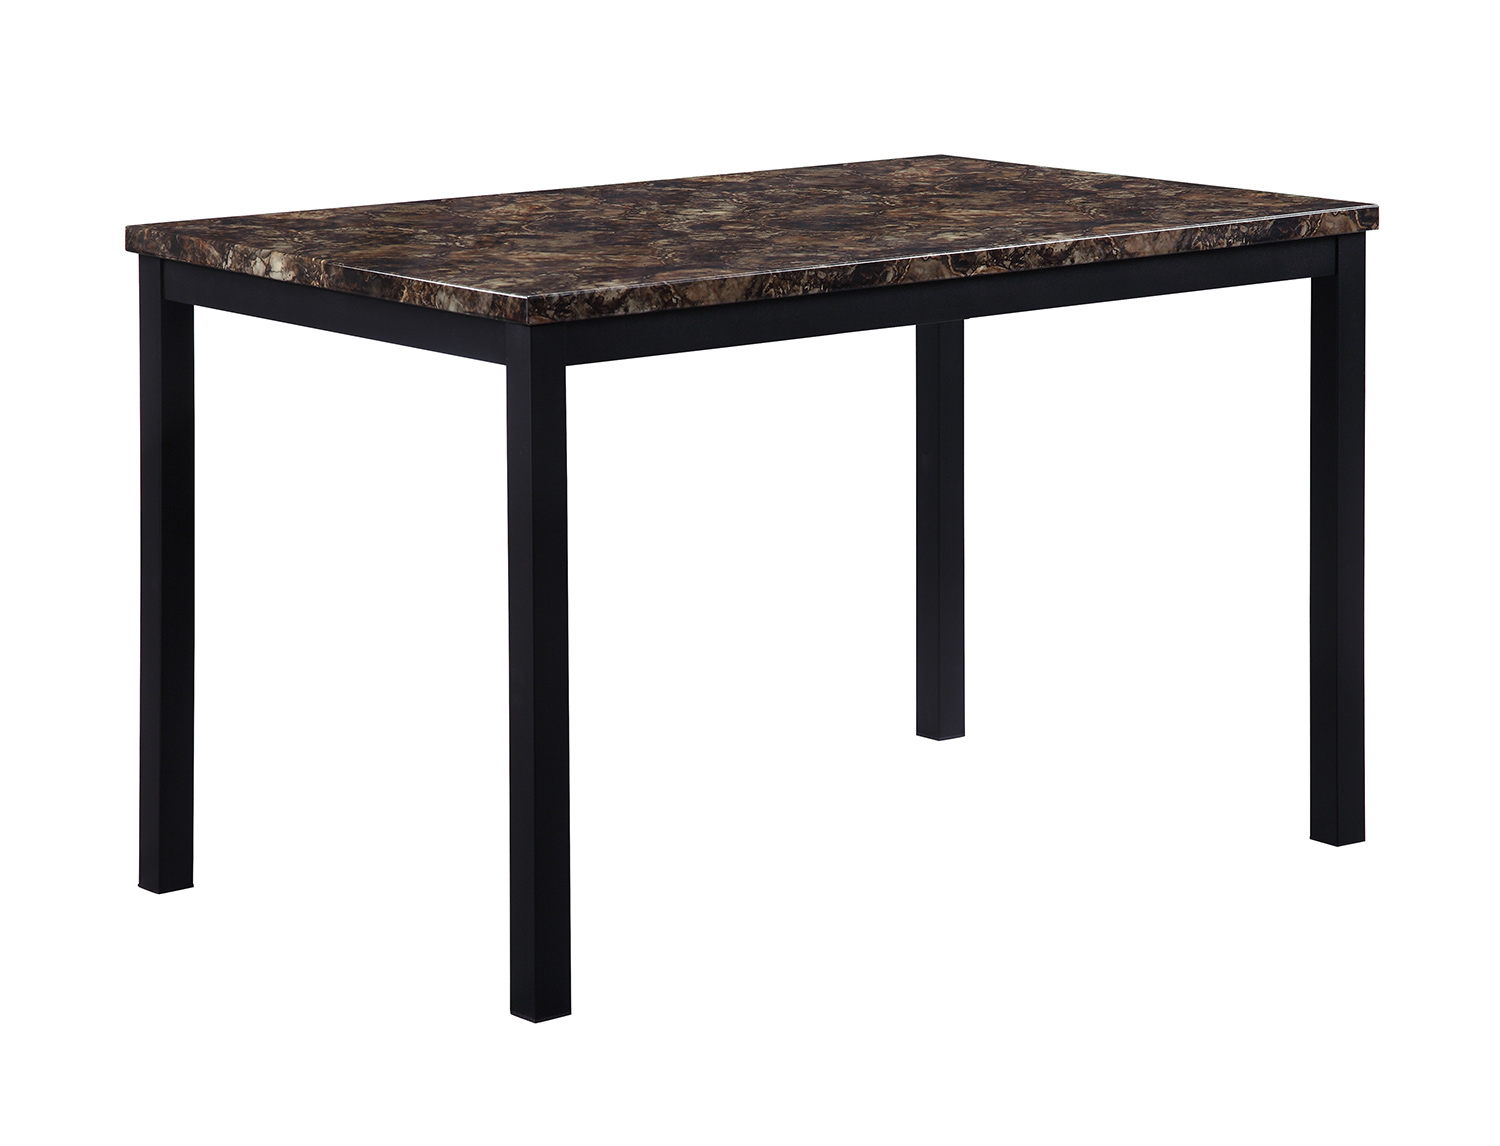 Homelegance Waite Dining Table - Faux Marble Top